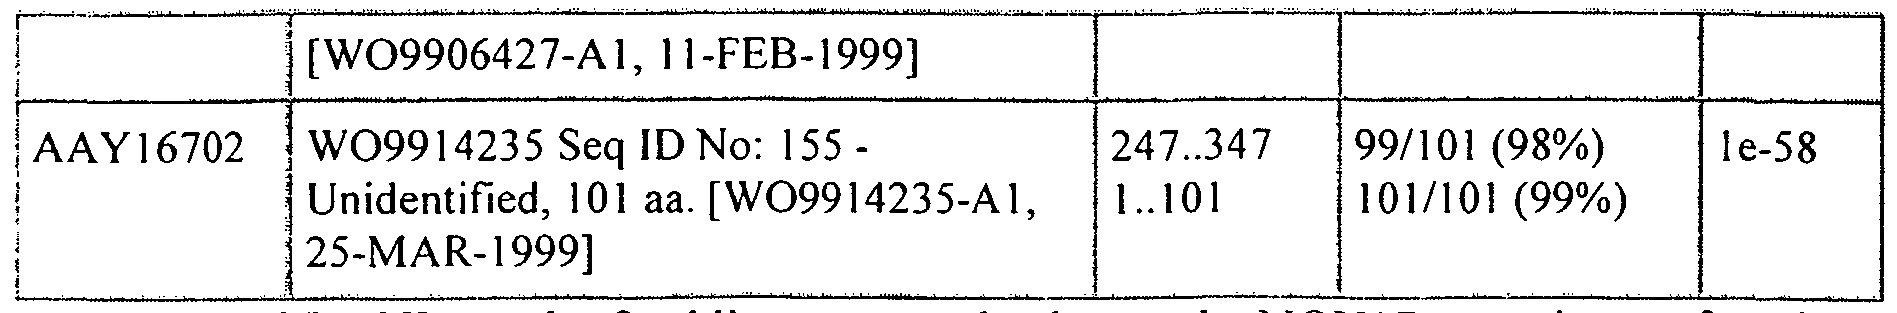 WO2003083039A2 - Therapeutic polypeptides, nucleic acids encoding same, and  methods of use - Google Patents